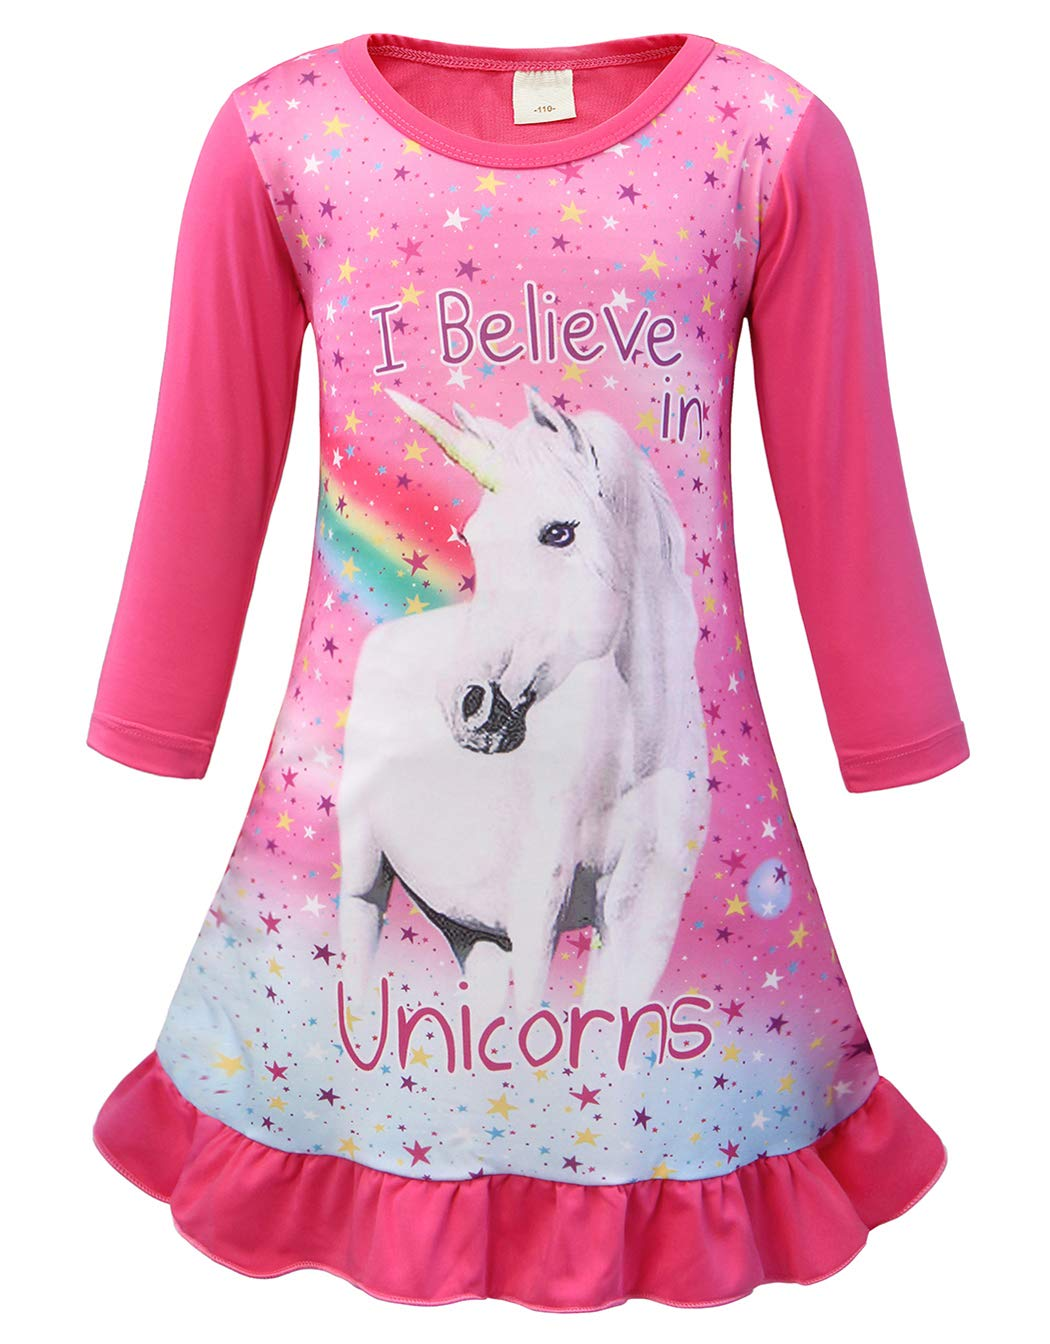 AmzBarley Girls Unicorn Nightgowns Kids Rainbow Nightie Nightdress Long Sleeve Dressing Gown Night Dresses